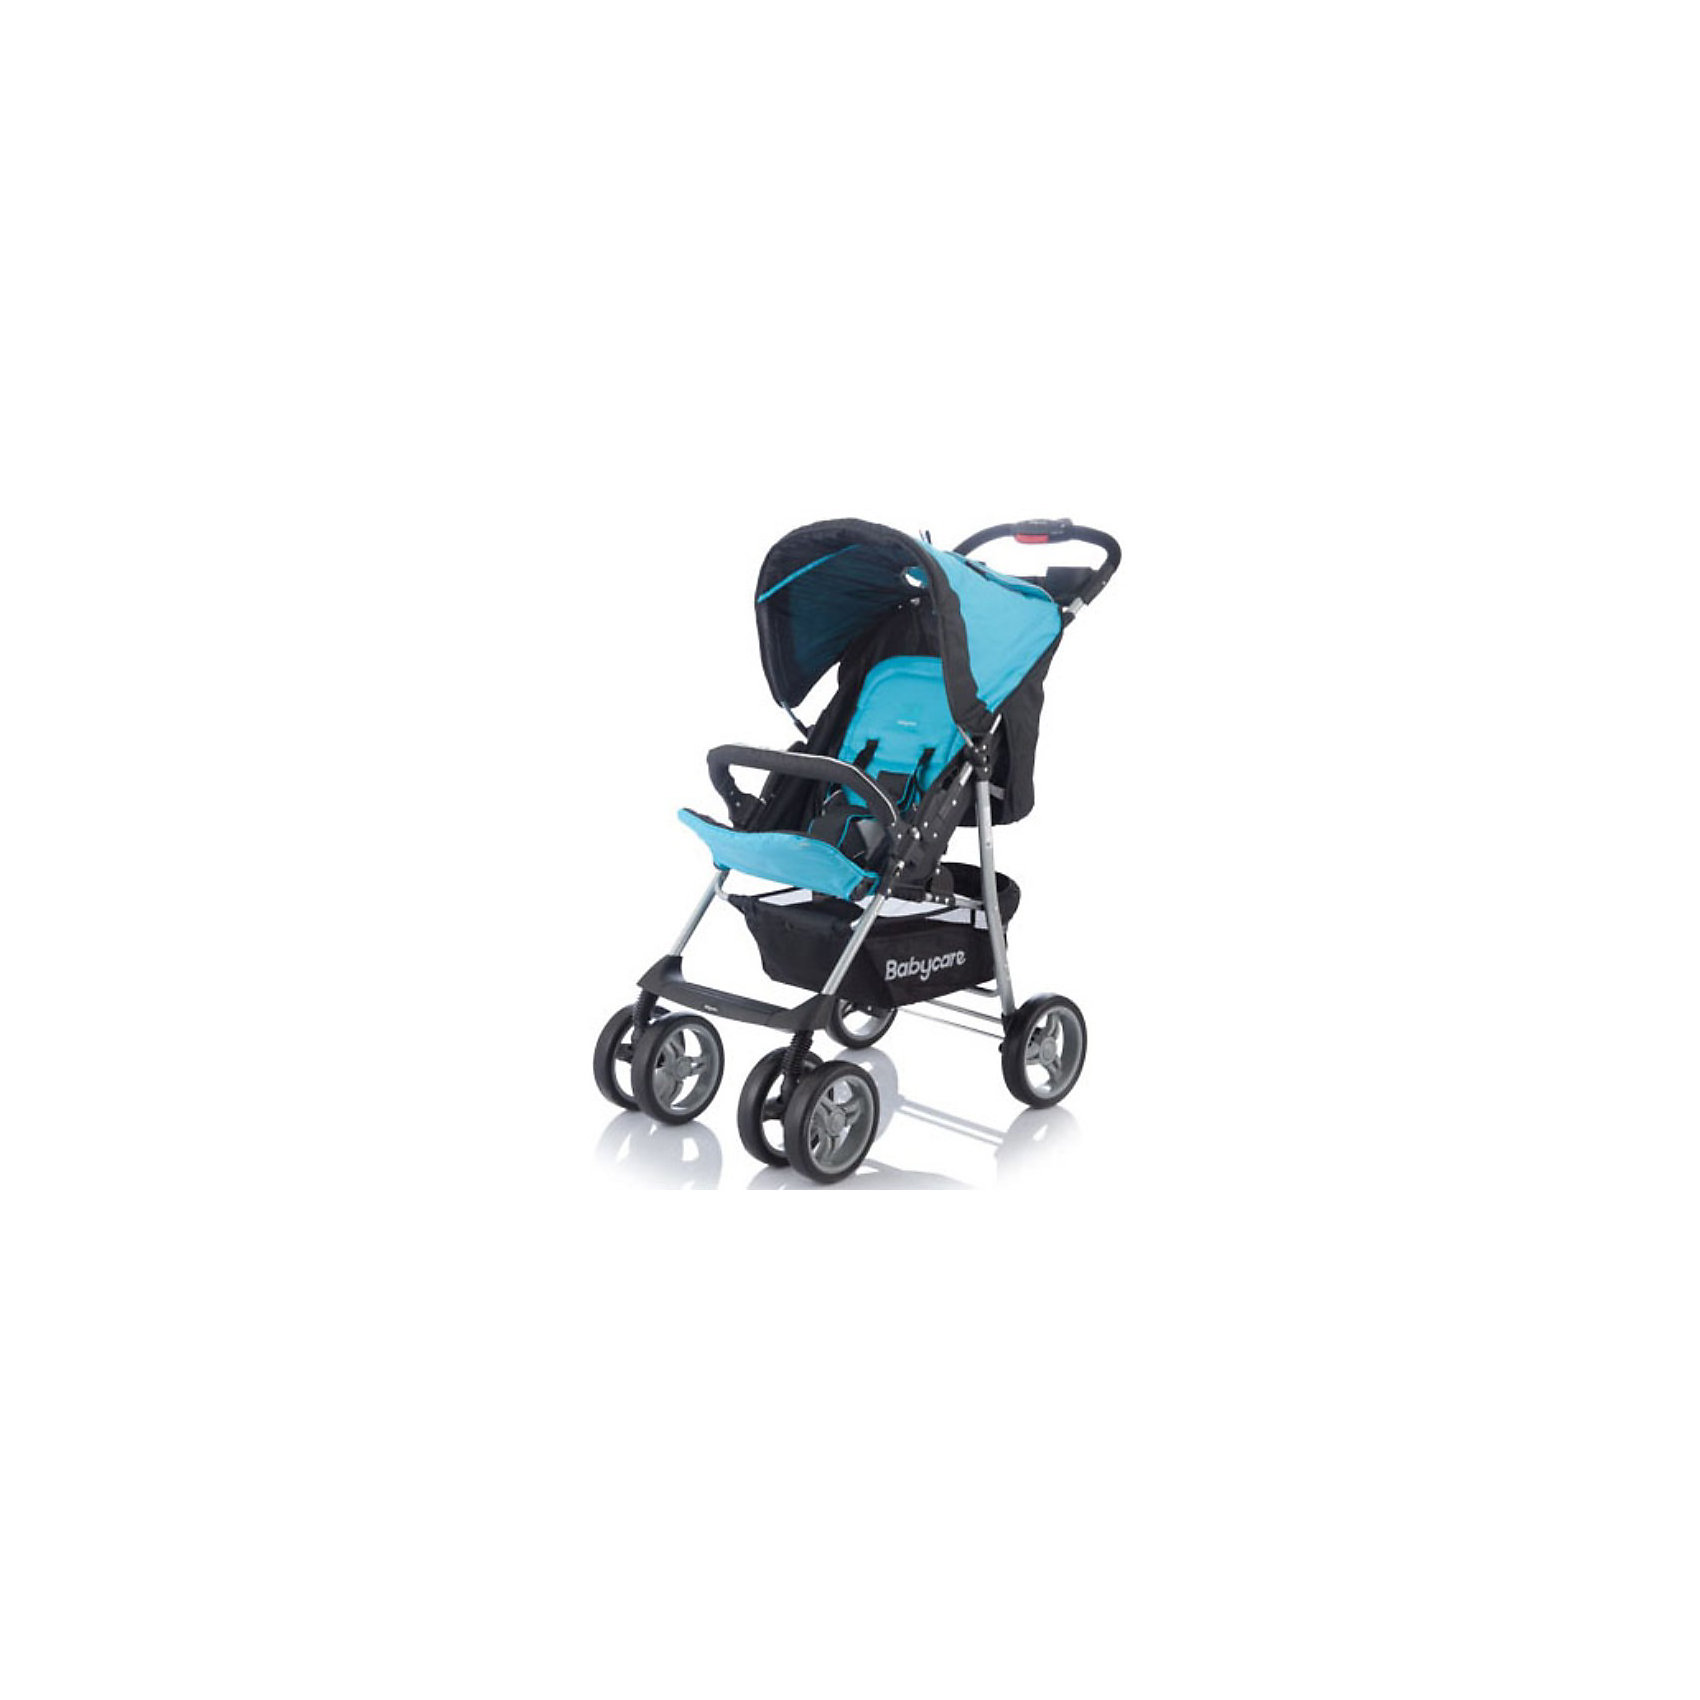 Baby Care Прогулочная коляска Voyager, Baby Care, голубой прогулочная коляска cool baby kdd 6699gb t fuchsia light grey